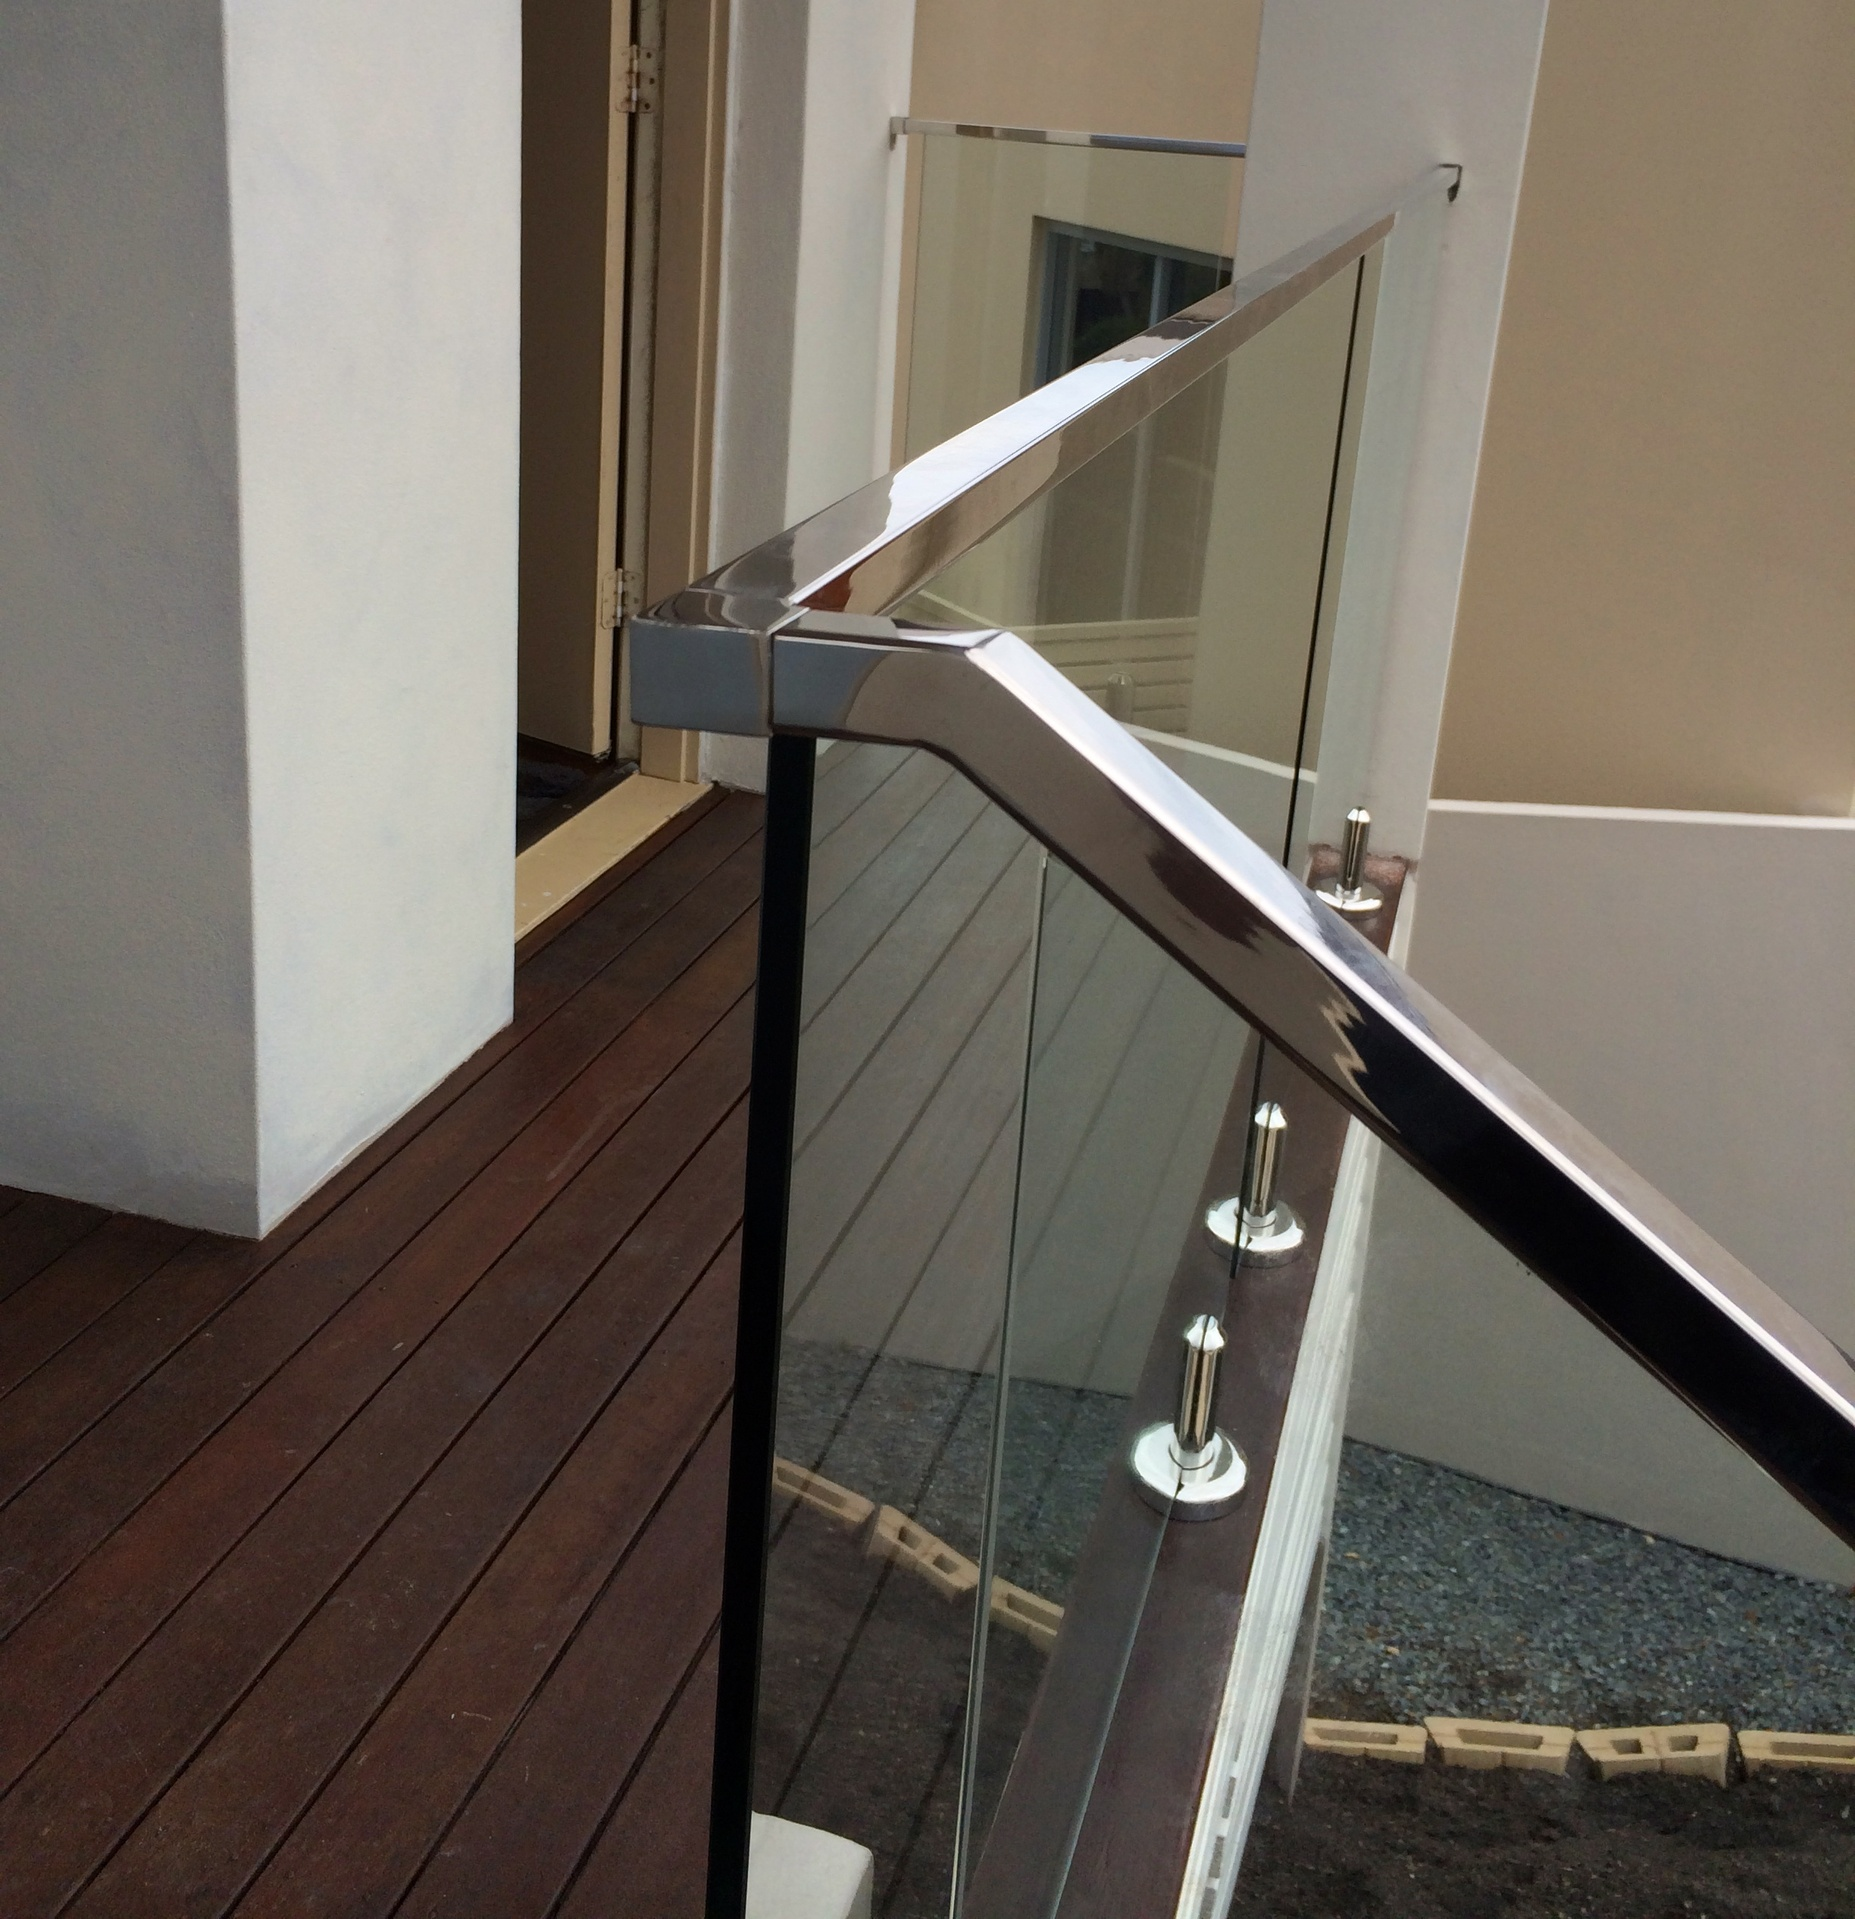 Mirror finish stainless steel top rail